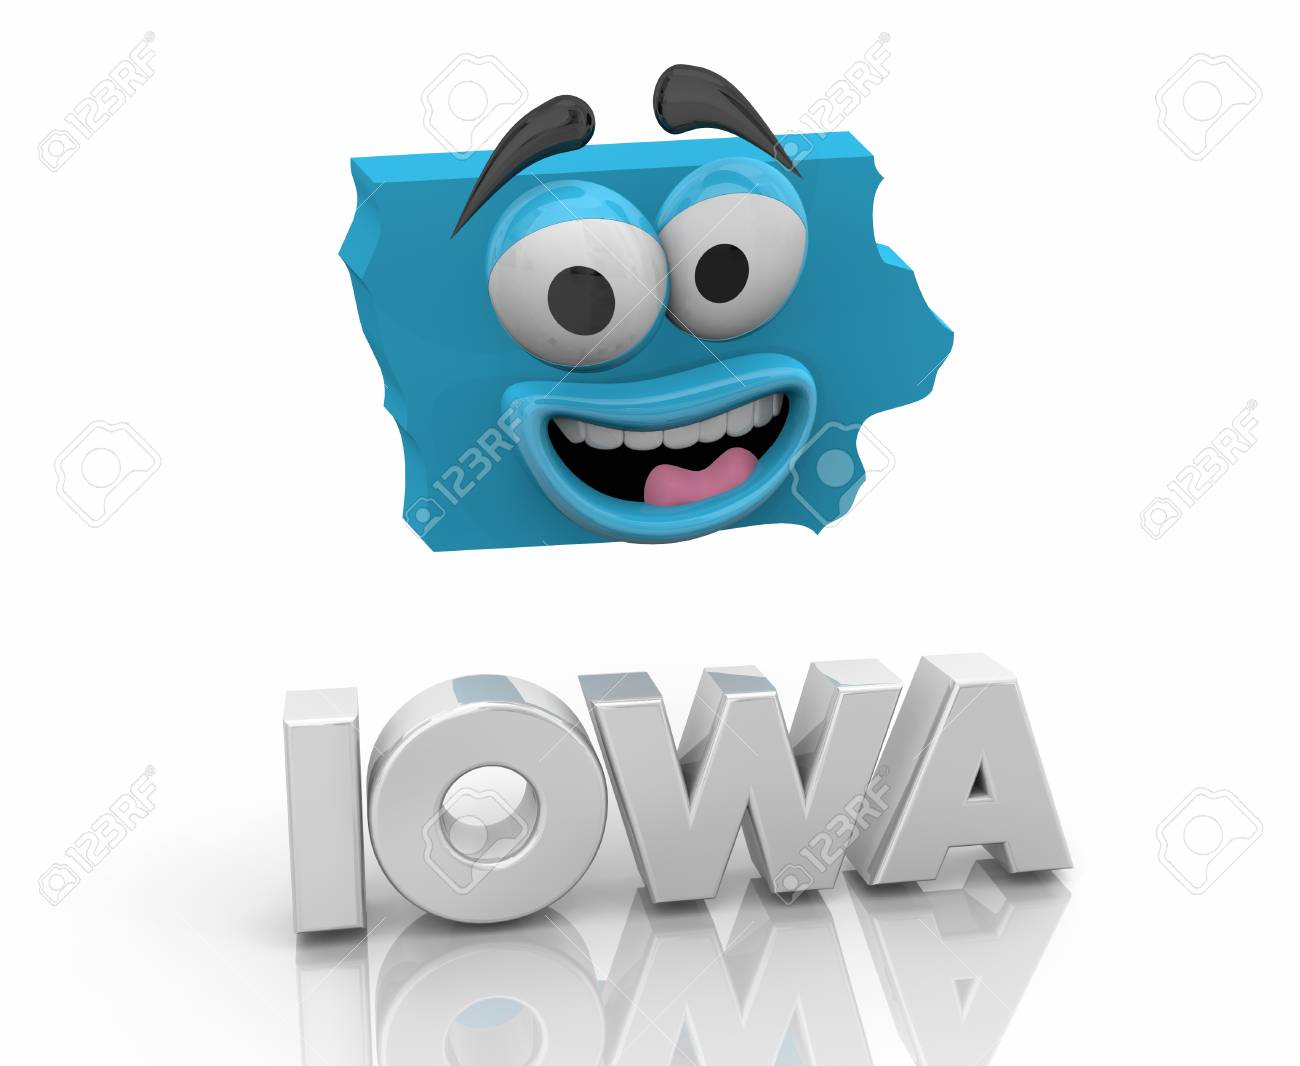 Iowa Ia State Map Cartoon Face Word 3d Illustration Stock Photo